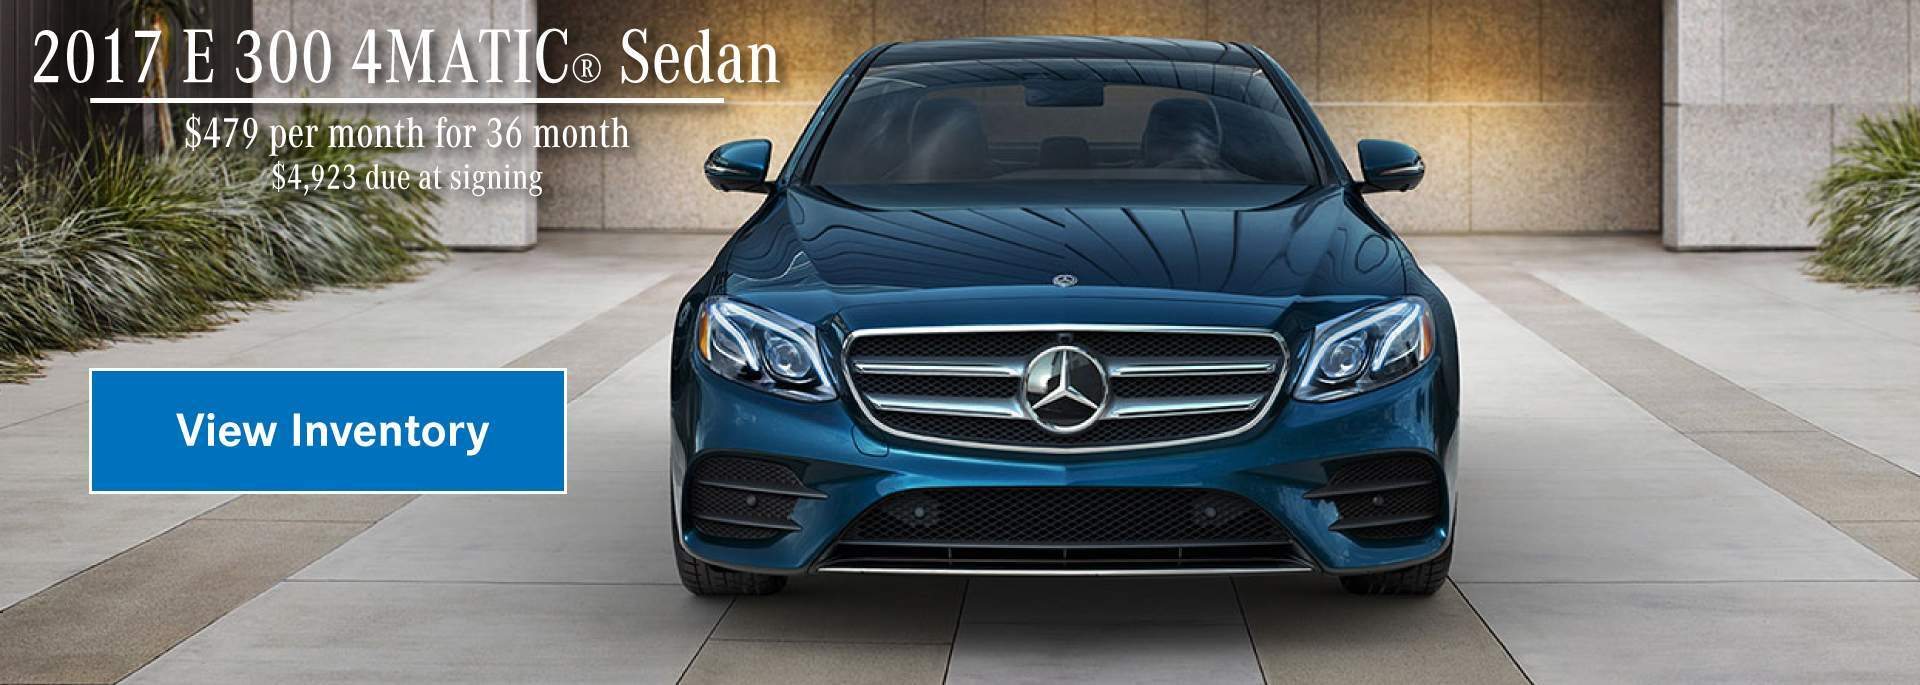 Mercedes benz of portsmouth luxury new and used car for Mercedes benz dealers manchester